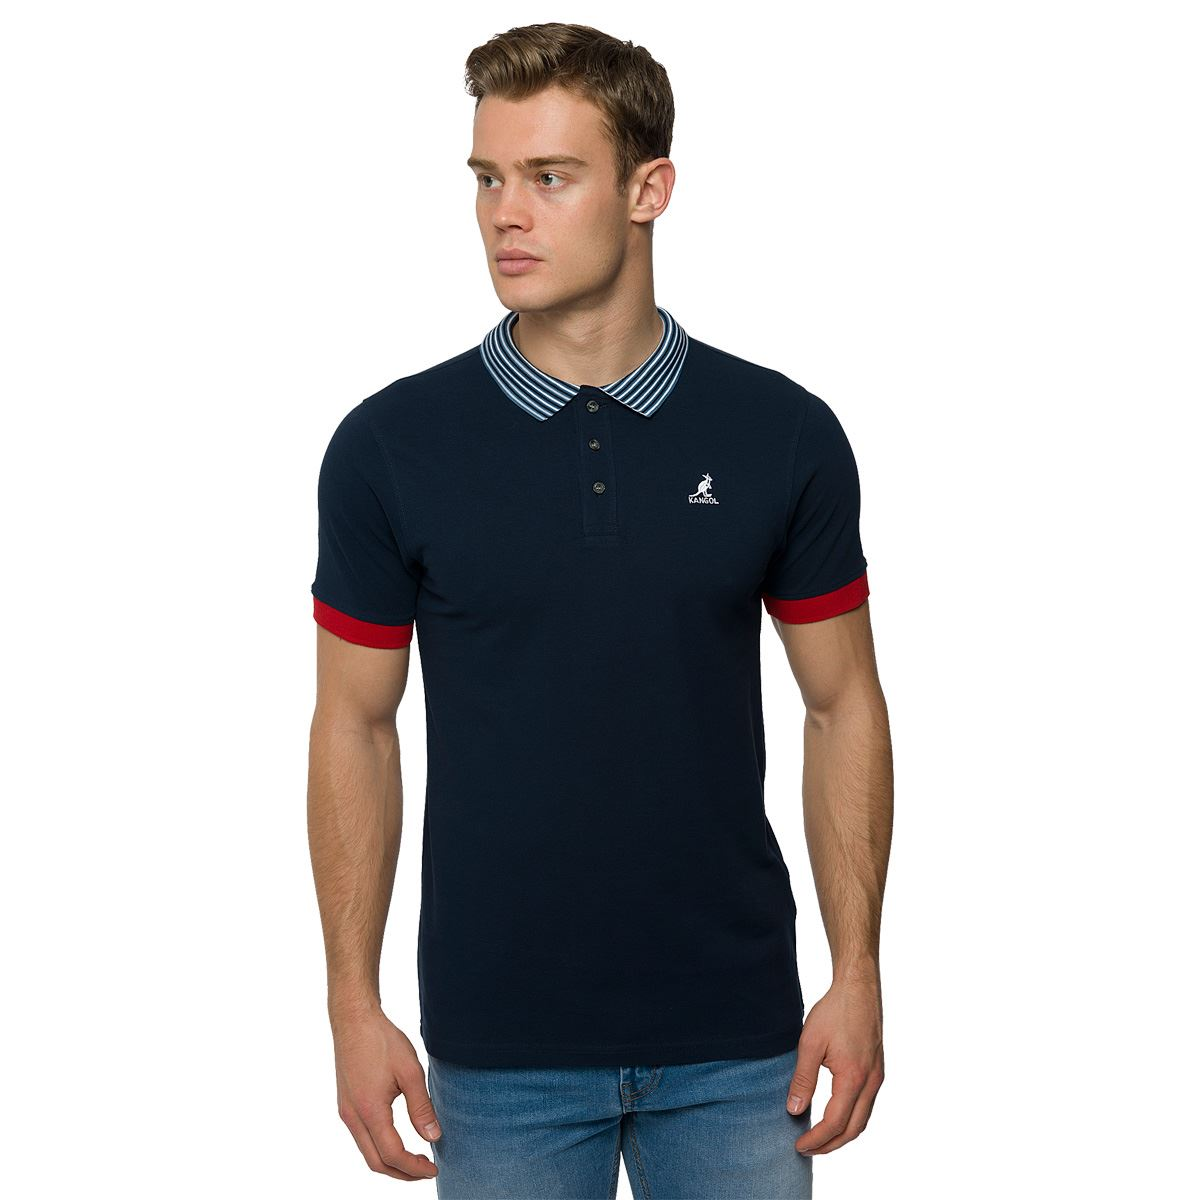 Kangol mens classic polo shirt plain top sporty striped for Branded polo t shirts